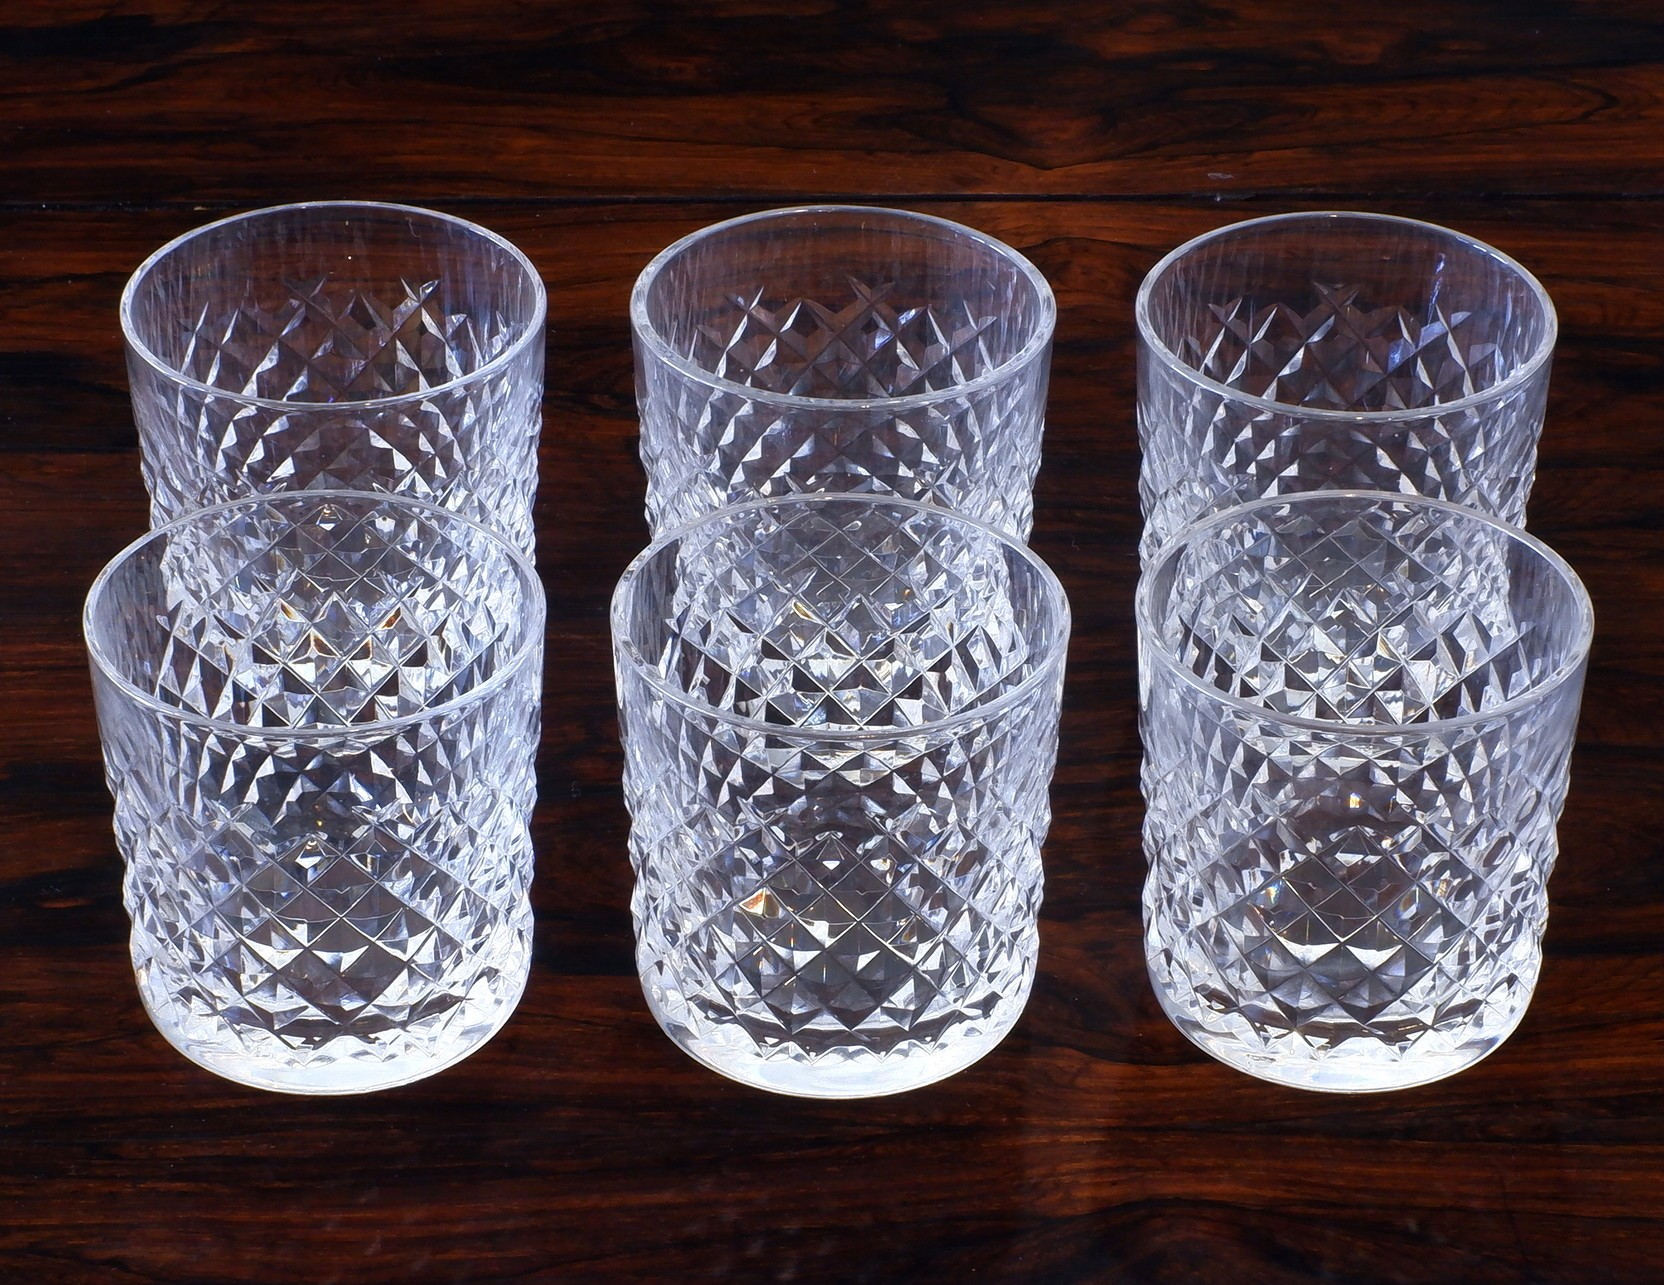 'Six Waterford Cut Crystal Whiskey Tumblers'